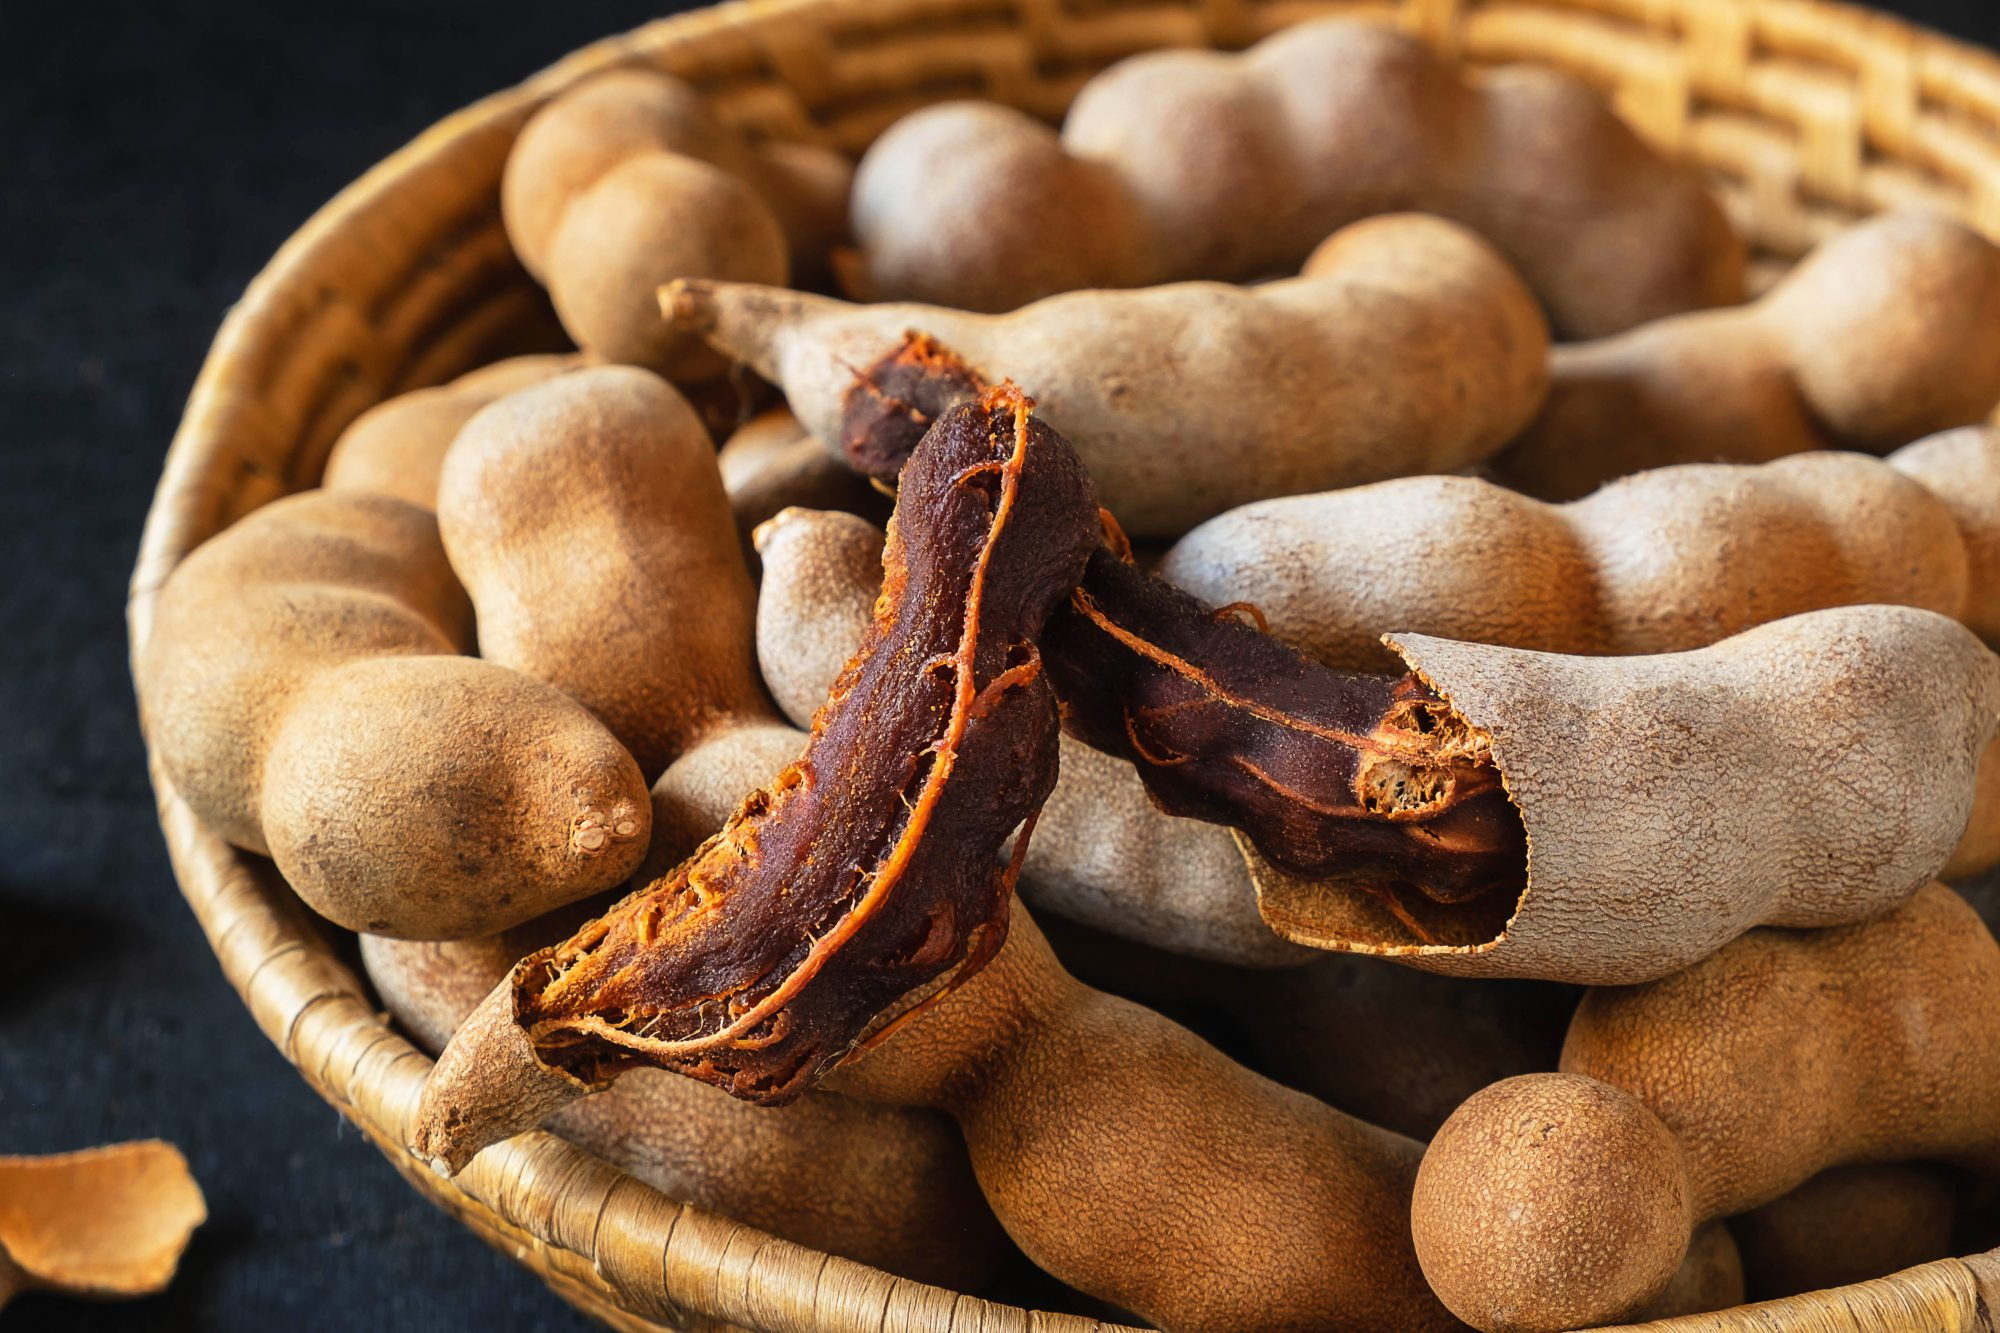 Tamarind in a wooden basket on the table